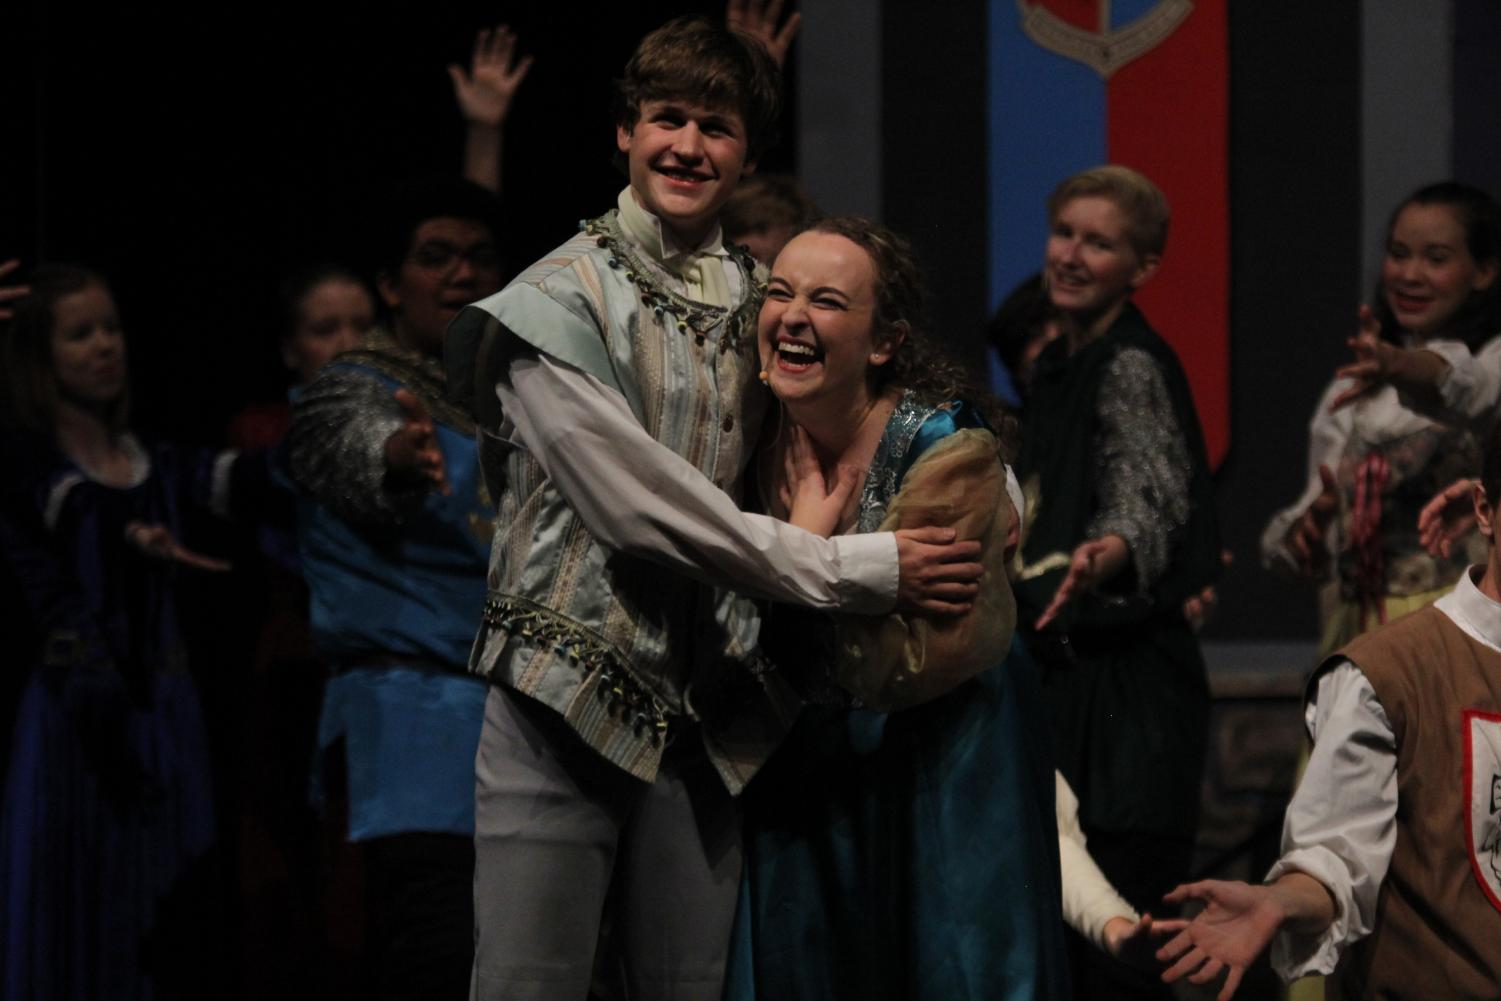 +Seniors+Noah+Smith+and+Ashlyn+Windmiller%2C+who+play+Prince+Dauntless+and+Winifred%2C+act+together+as+the+show%E2%80%99s+leads.+